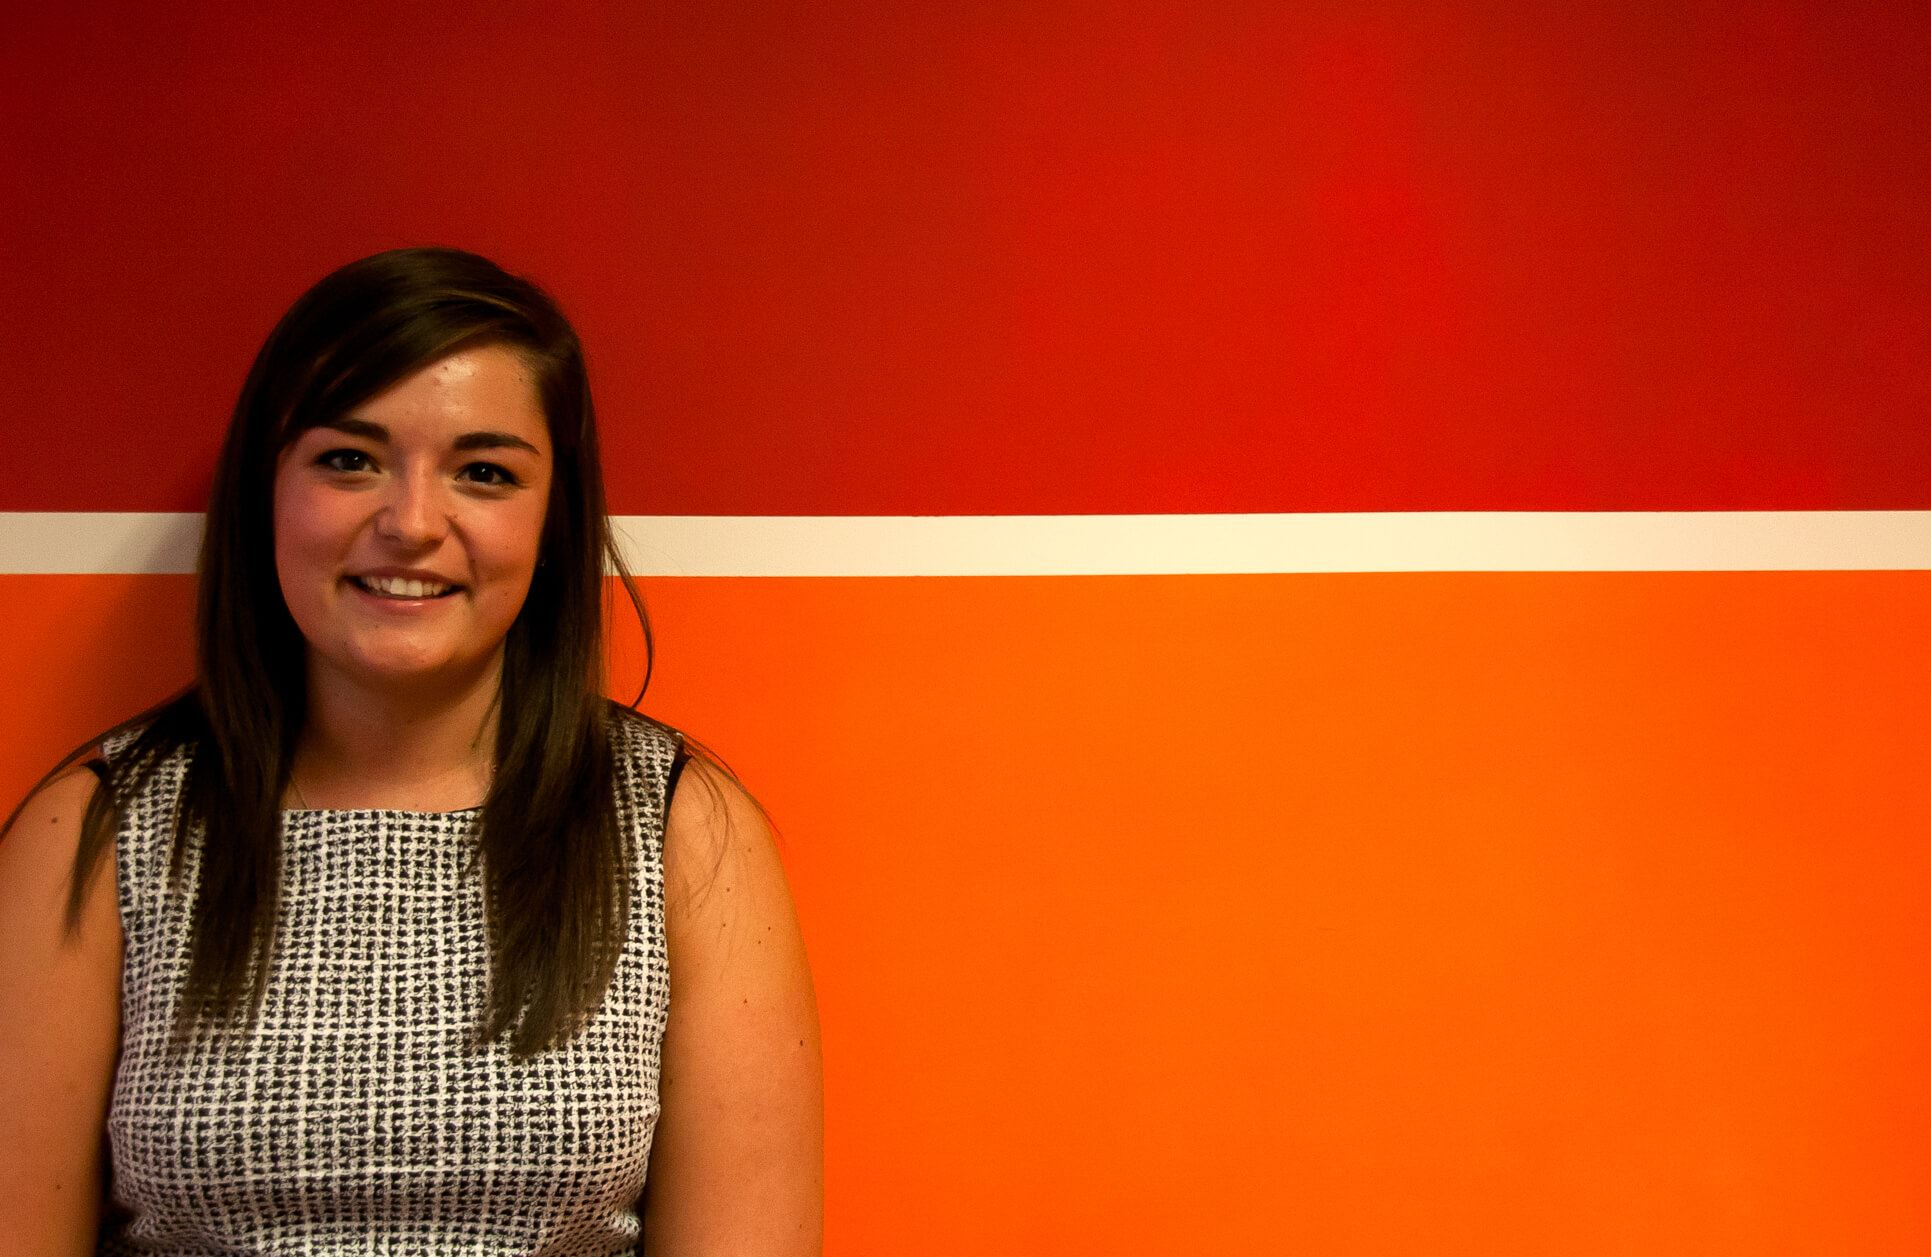 Emma looking at camera standing next to orange wall.